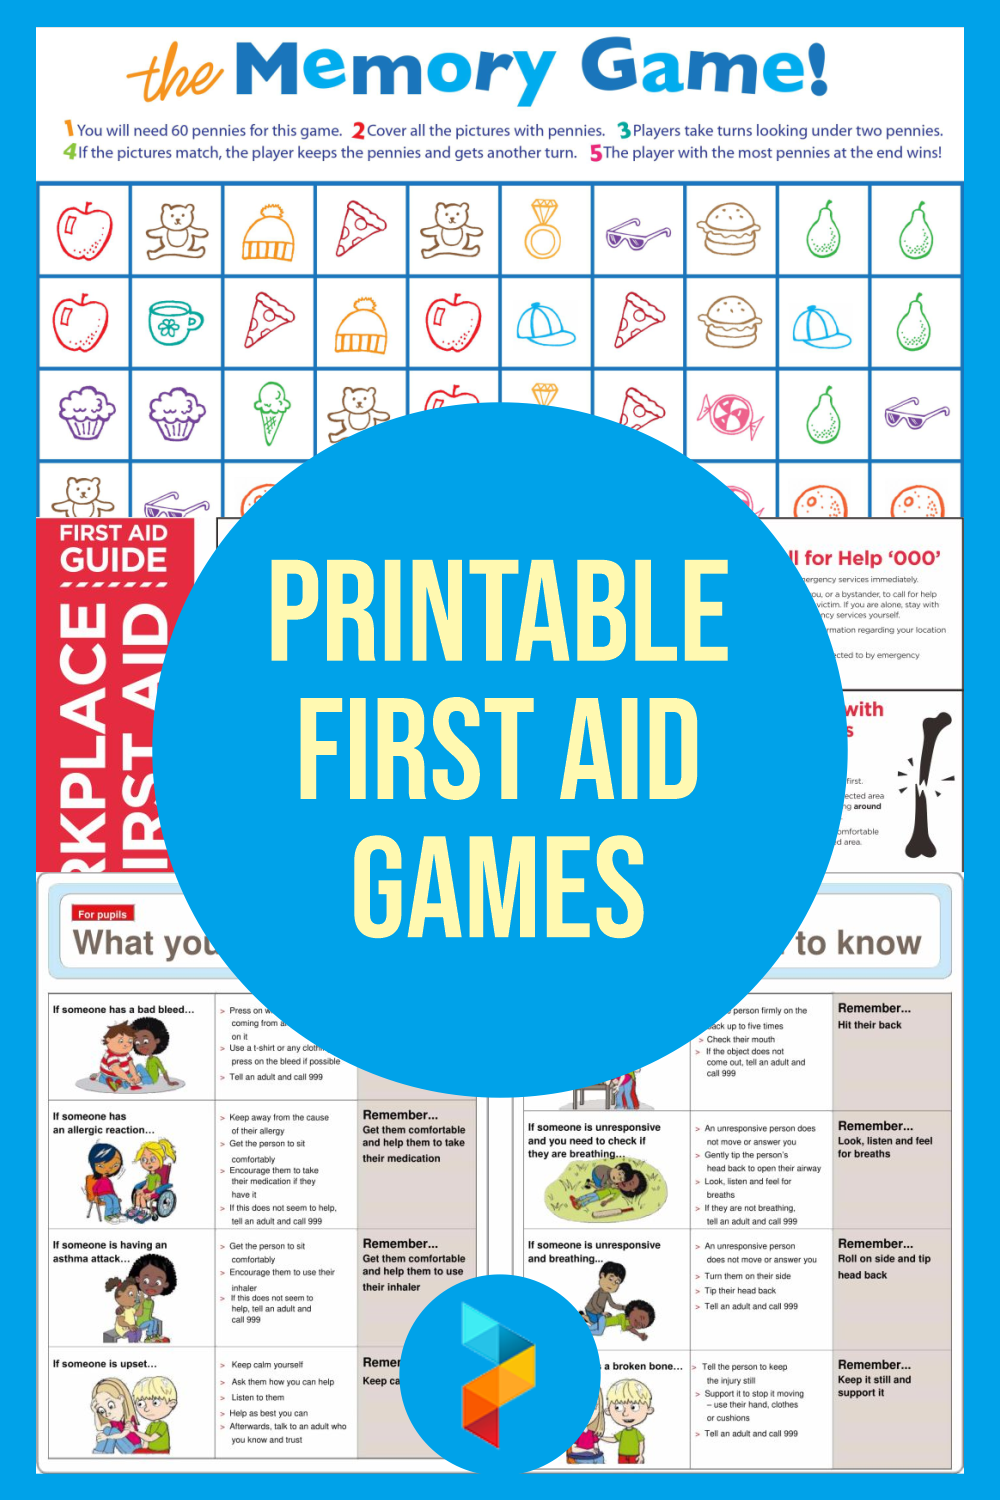 Printable First Aid Games